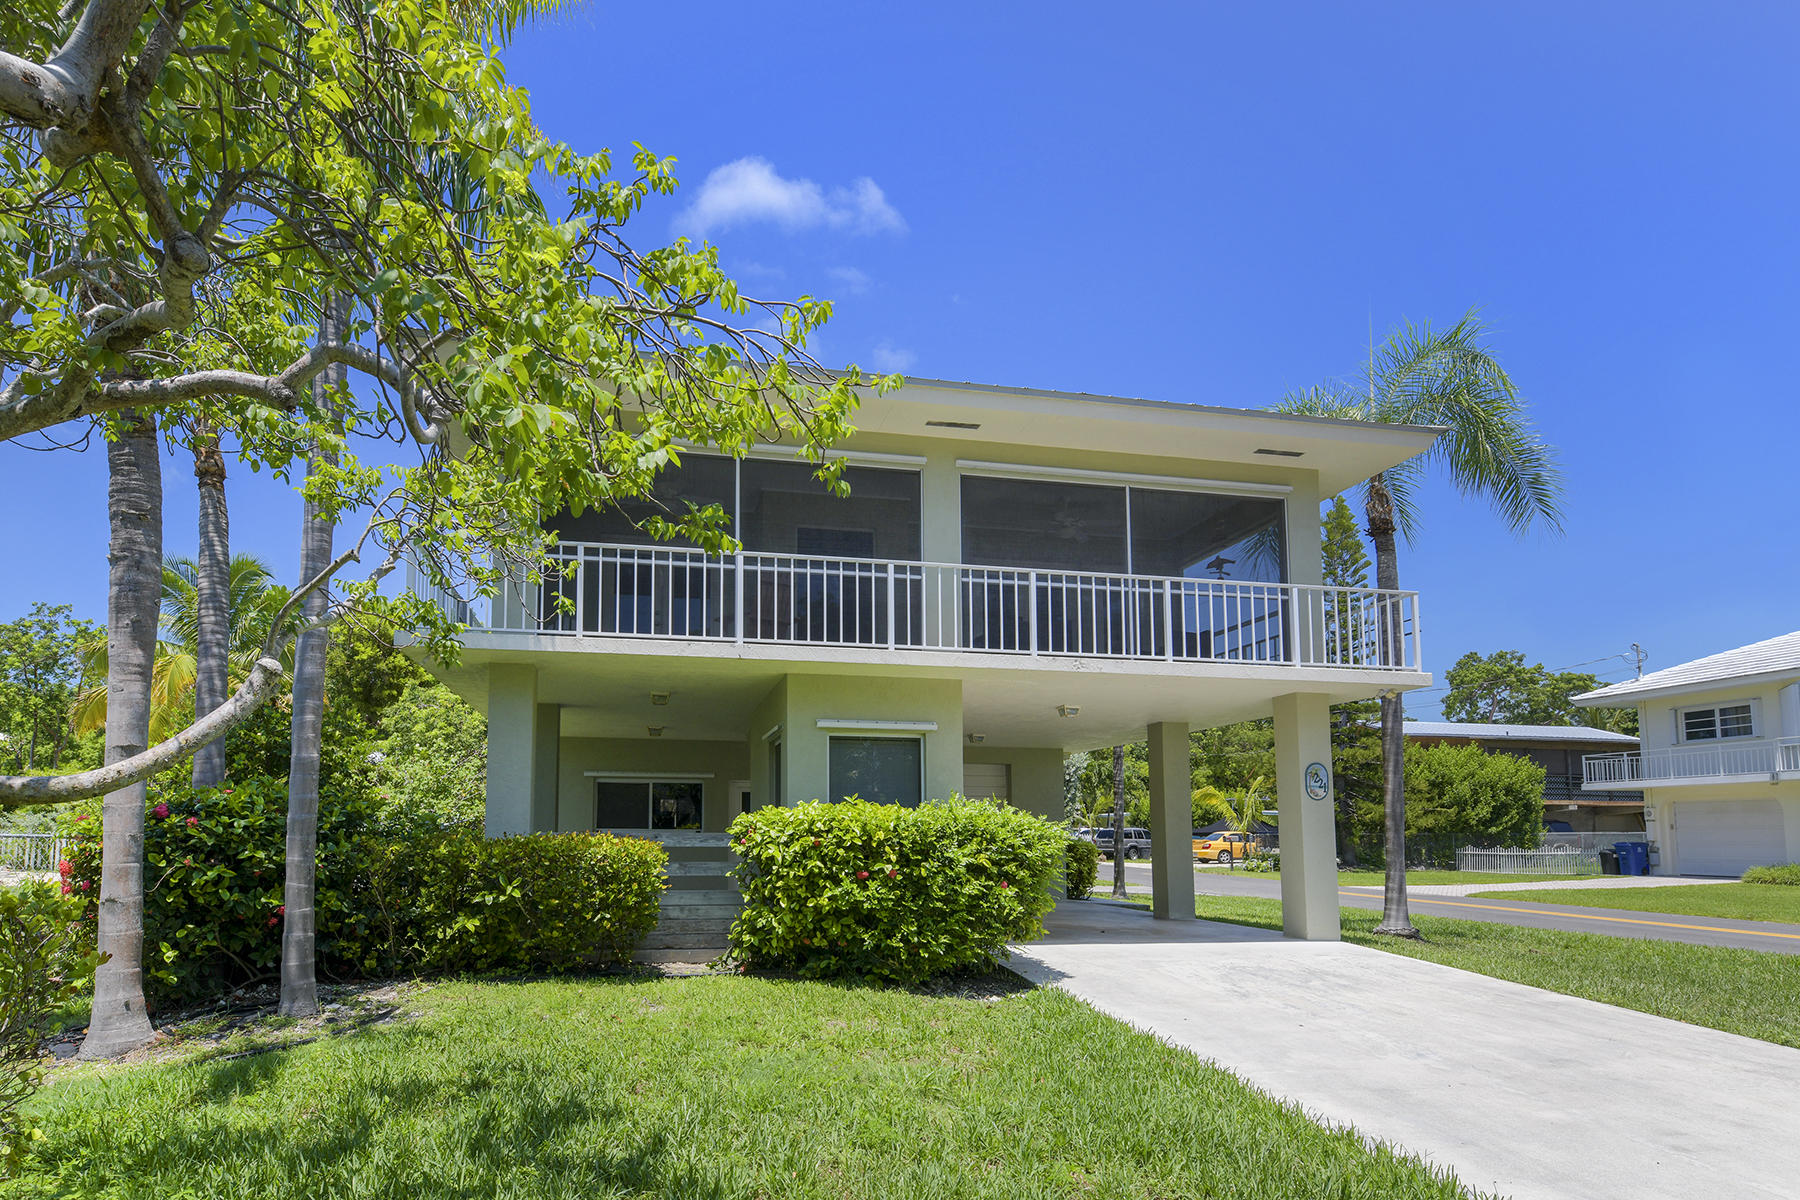 Single Family Homes for Active at 221 Tarpon Street, Tavernier, FL 221 Tarpon Street Tavernier, Florida 33070 United States